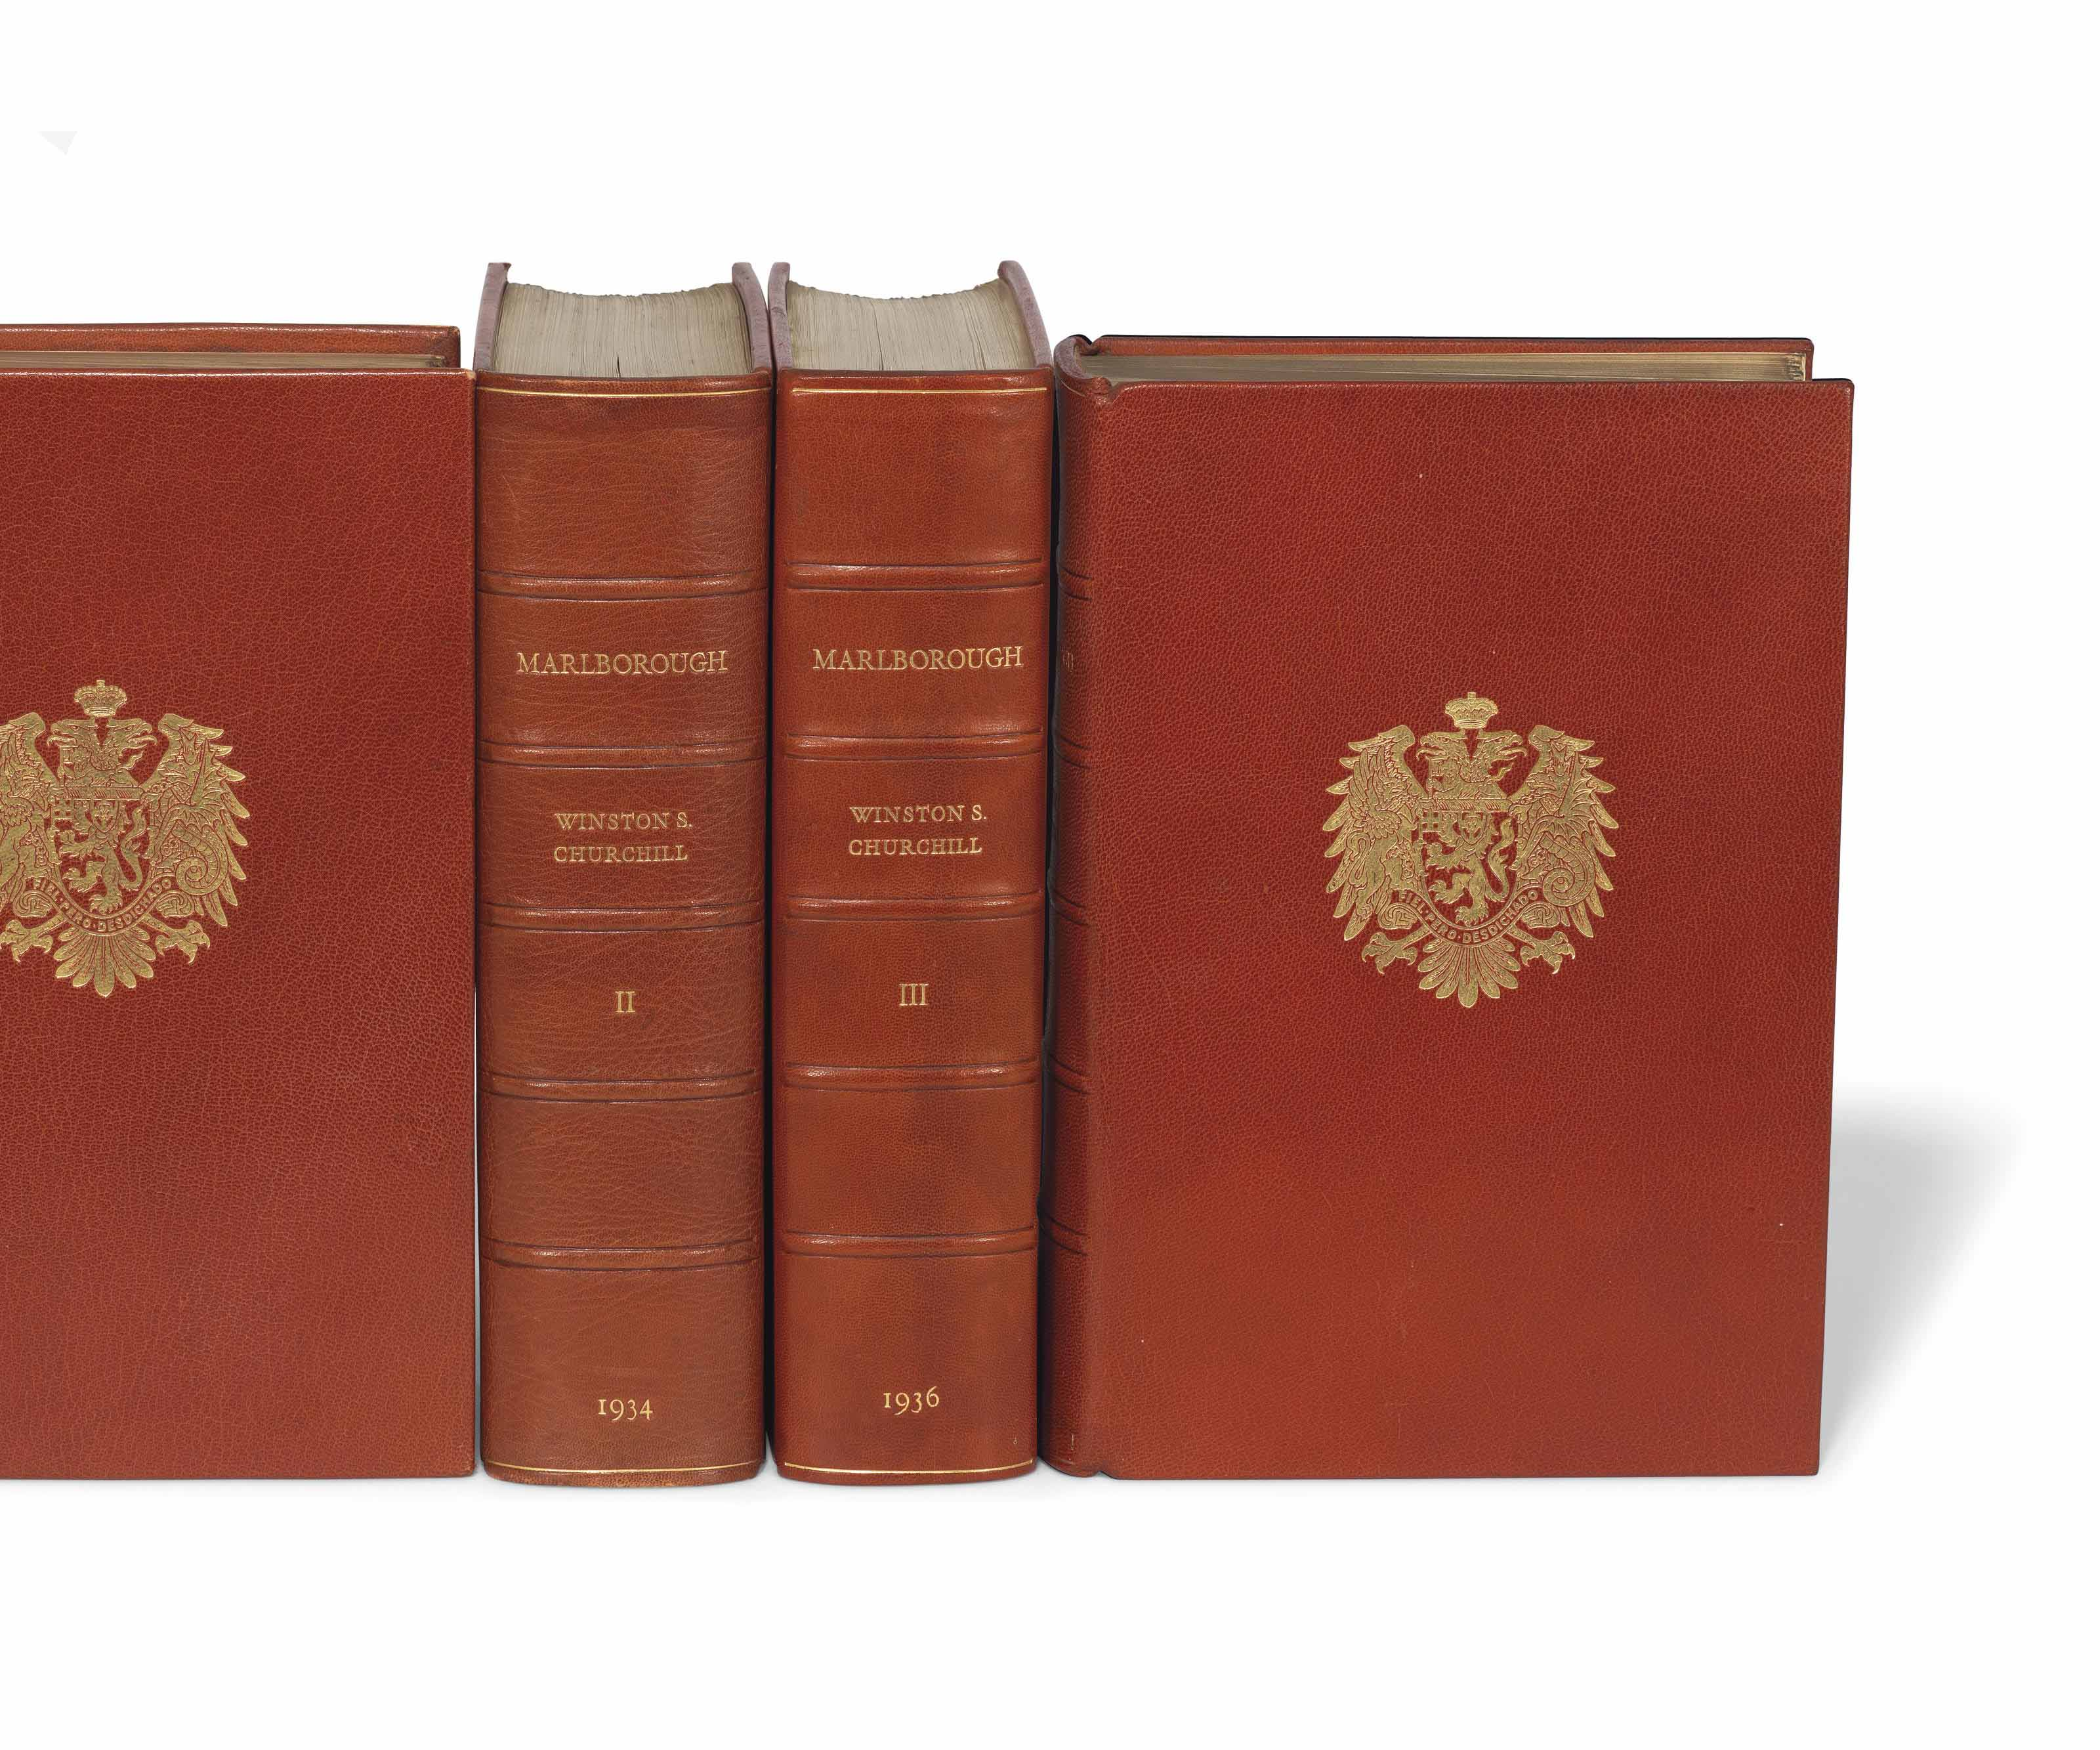 """CHURCHILL, Winston Spencer (1874-1965). Marlborough His Life and Times. London: George G. Harrap, 1933.  4 volumes, 4°. Plates and illustrations. Original tan morocco by Sangorski and Sutcliffe, Marlborough arms stamped in gilt on front covers, spine compartments with raised bands lettered in gilt, top edges gilt, others uncut; later matching morocco-backed clamshell cases by Zaehnsdorf for Asprey.  LIMITED TO 155 COPIES COPIES SIGNED BY CHURCHILL, of which 150 were for sale, this designated a """"special"""" copy. The limited edition was originally issued in card slipcases, but this copy has been elegantly boxed in matching quarter morocco. The trade edition of 17,000 copies was issued in plum buckram. Both the limited and the trade edition of 1933 form the first English edition. Woods A40(a)."""